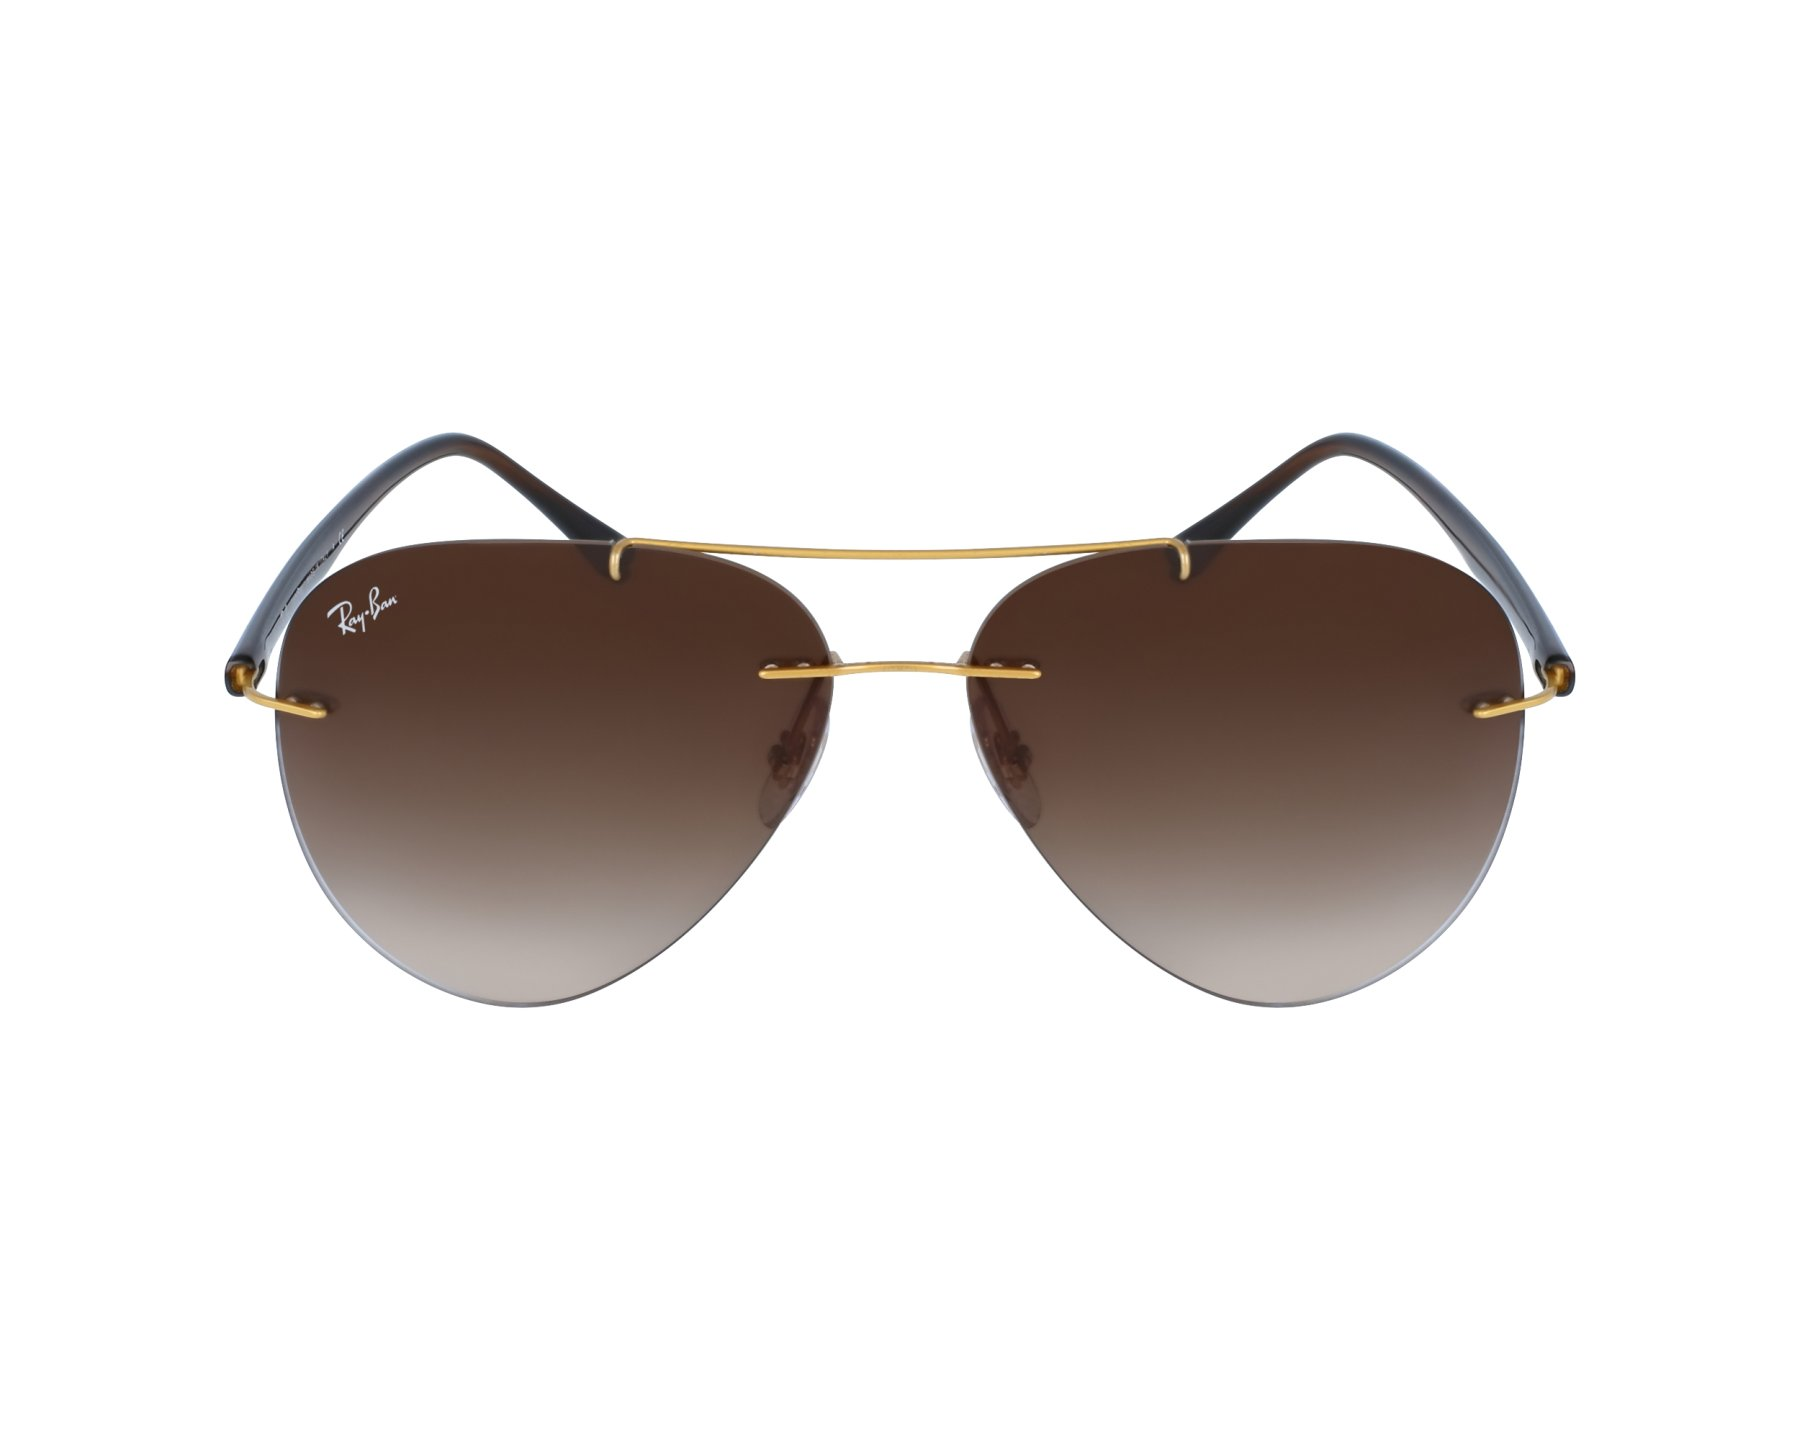 954ad0b62d Sunglasses Ray-Ban RB-8058 157 13 59-13 Gold Brown profile